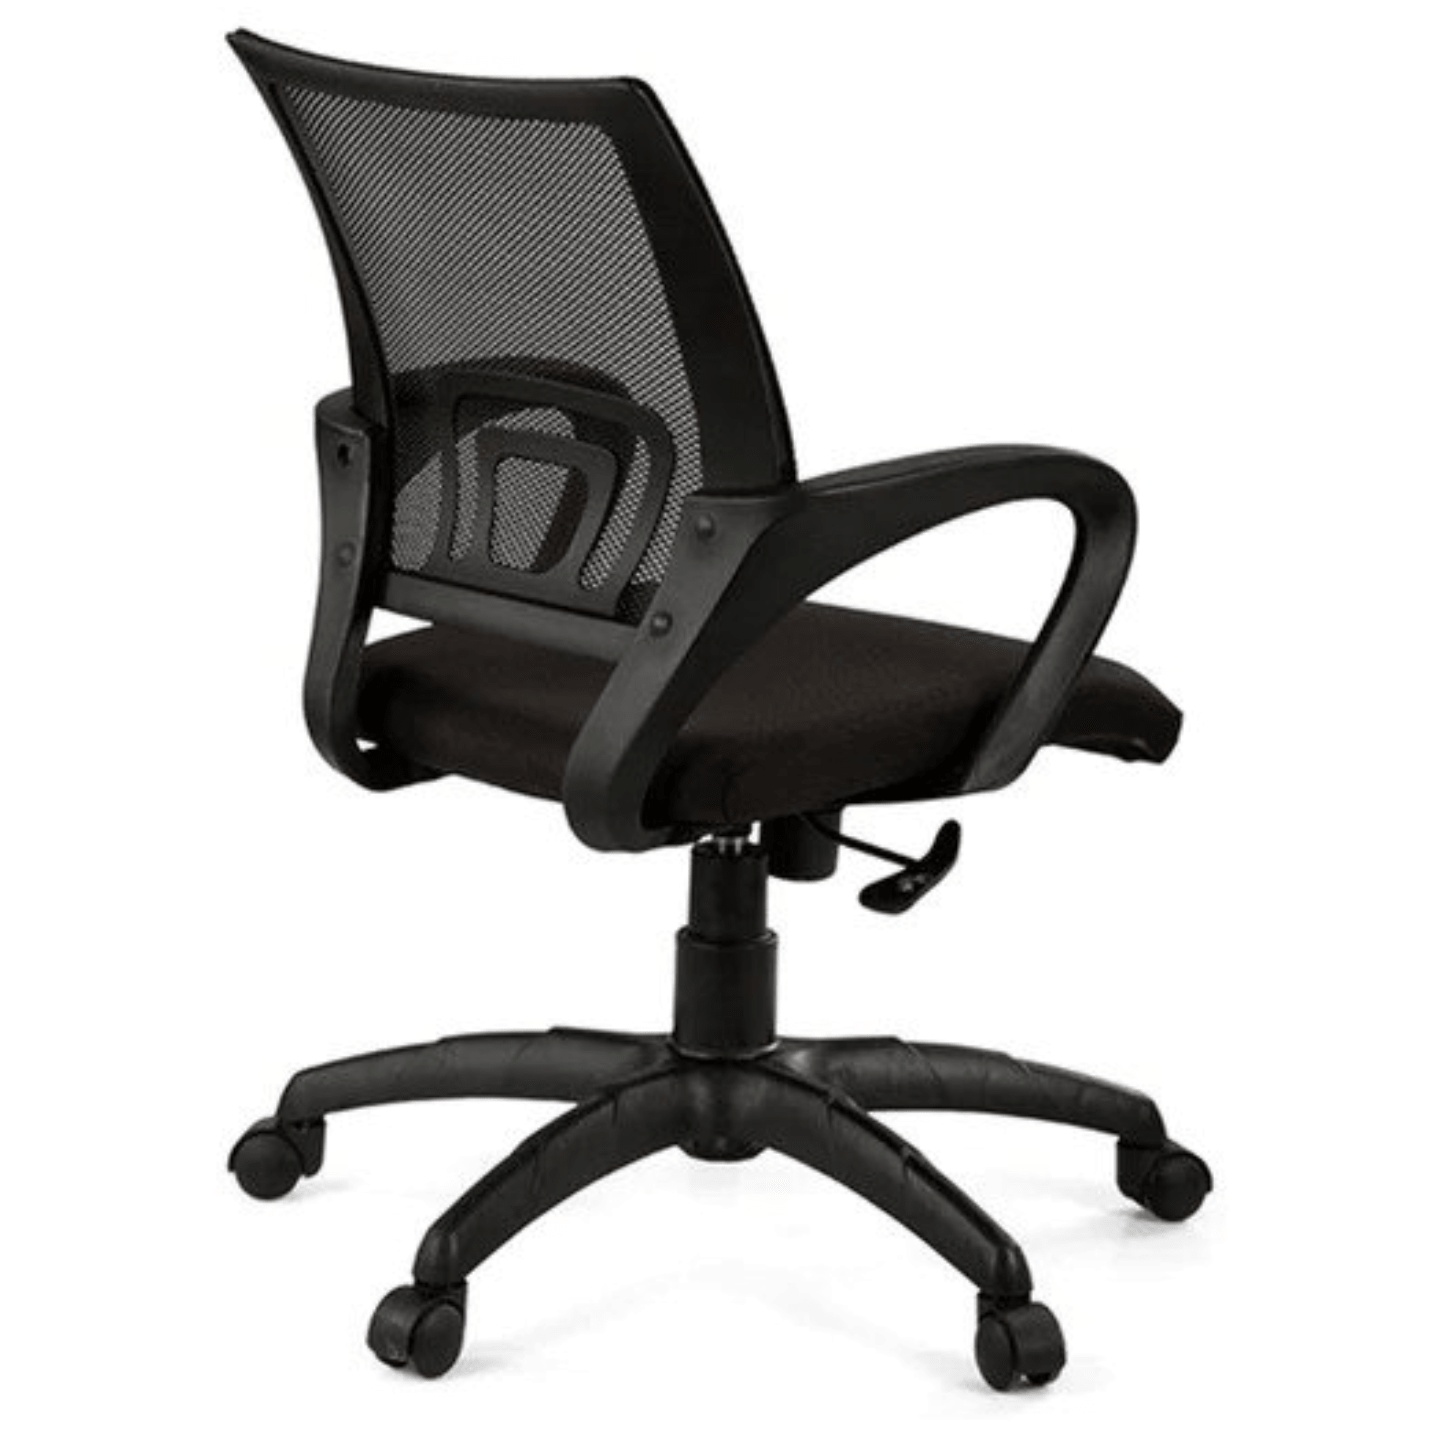 Executive Office Chair Model NILE